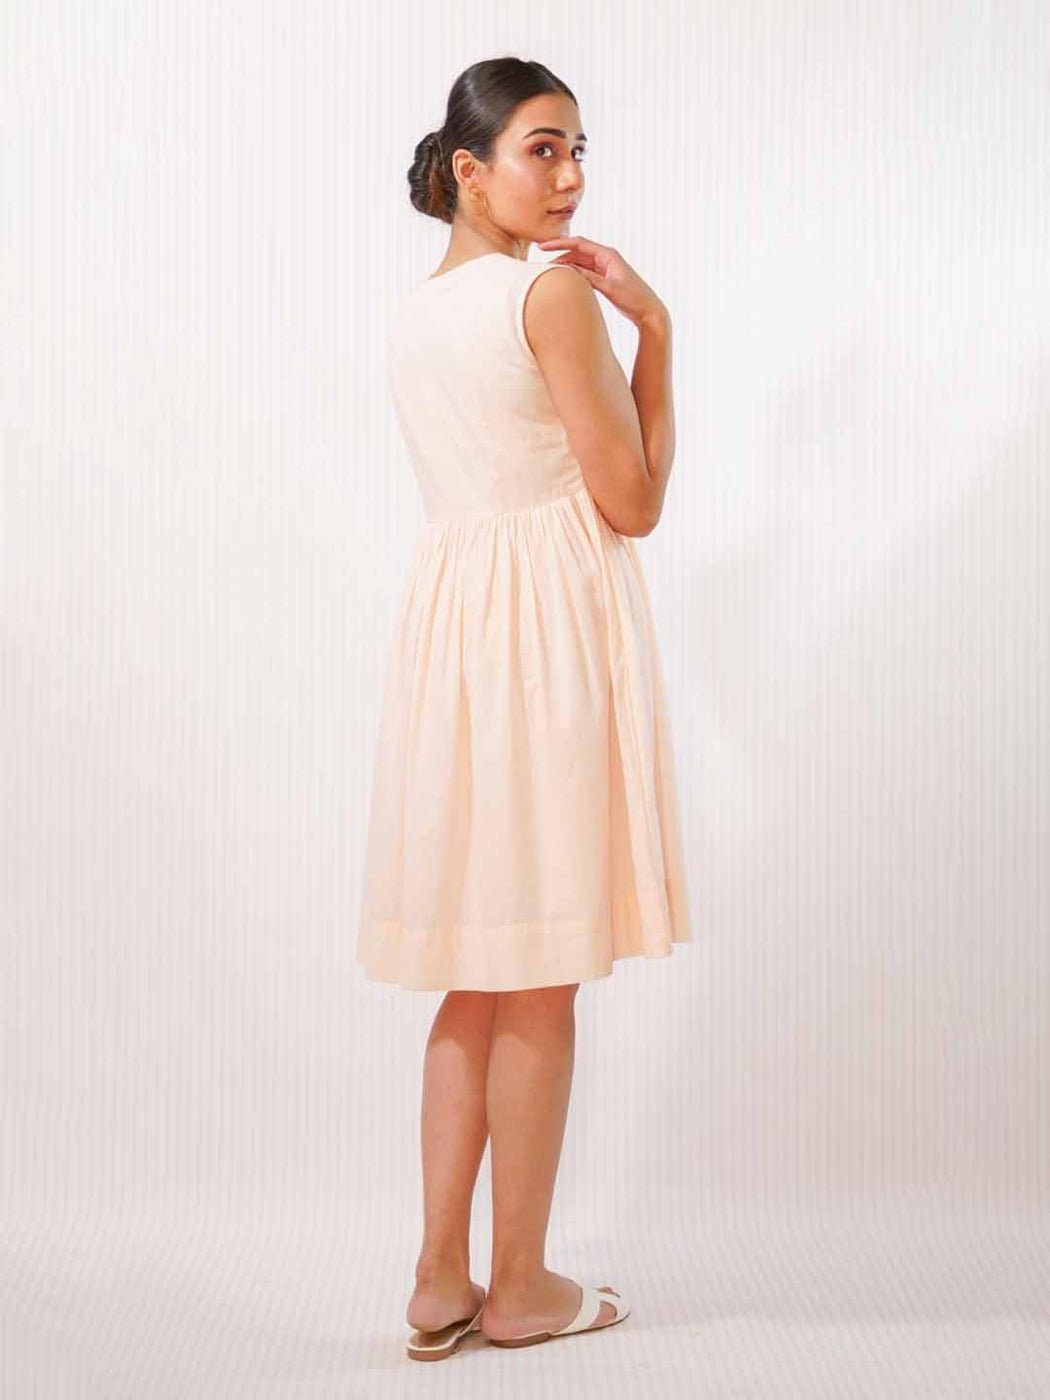 Peachy Tint - V Neck Gathered Dress - Thevasa